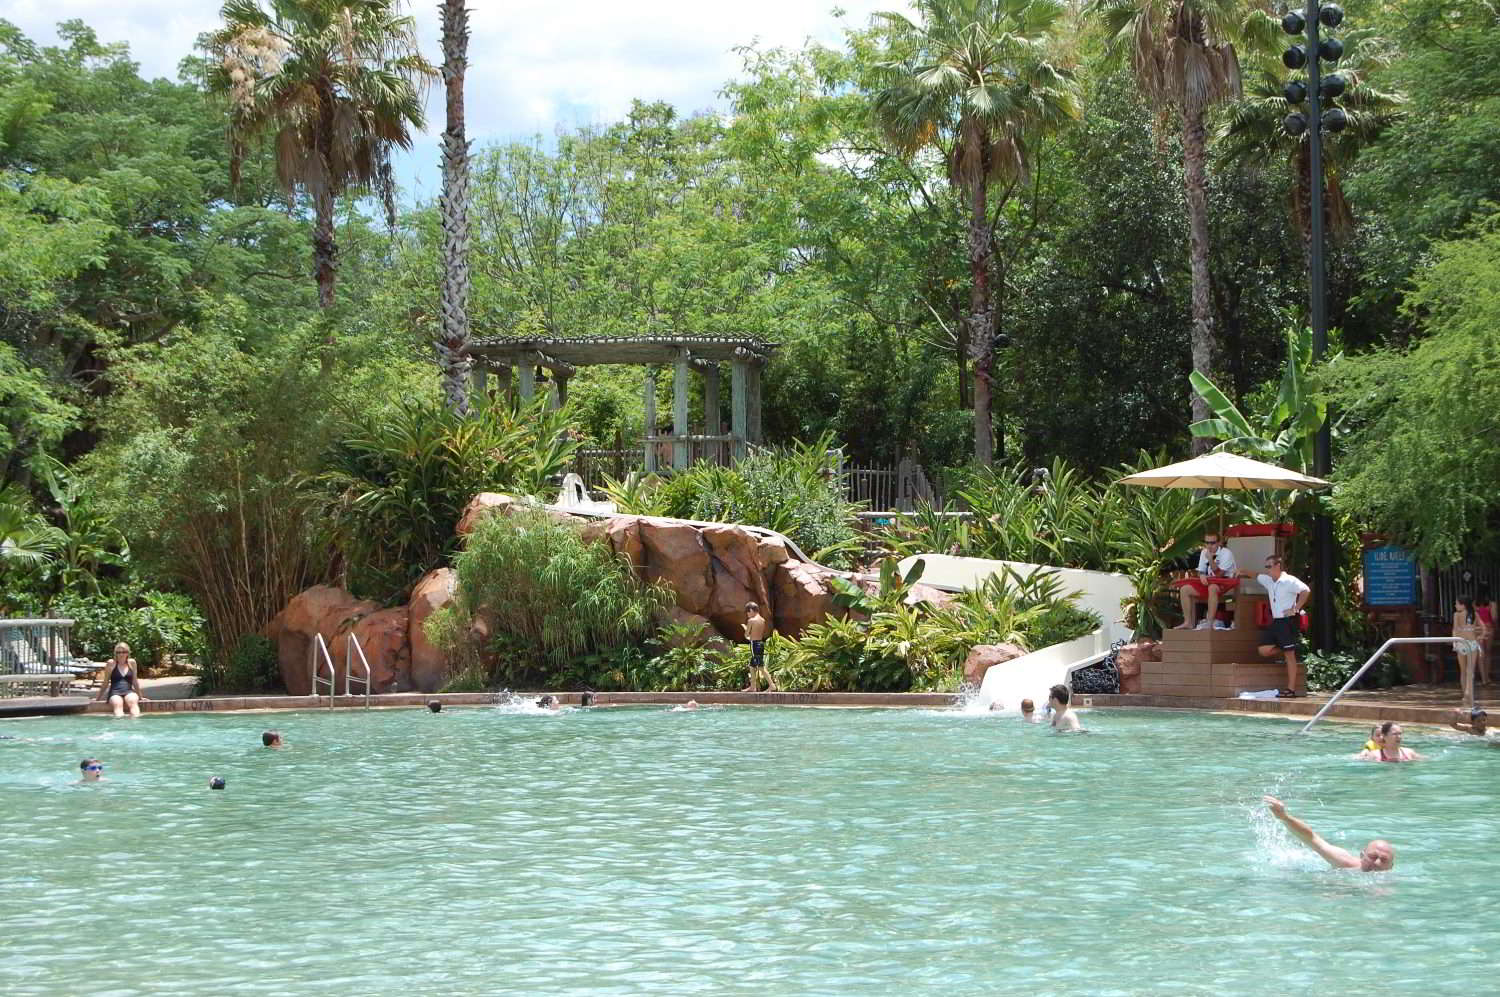 Disney's Animal Kingdom Lodge features a beautifully landscaped, zero-depth entry pool with slide and a smaller wading pool for little ones.